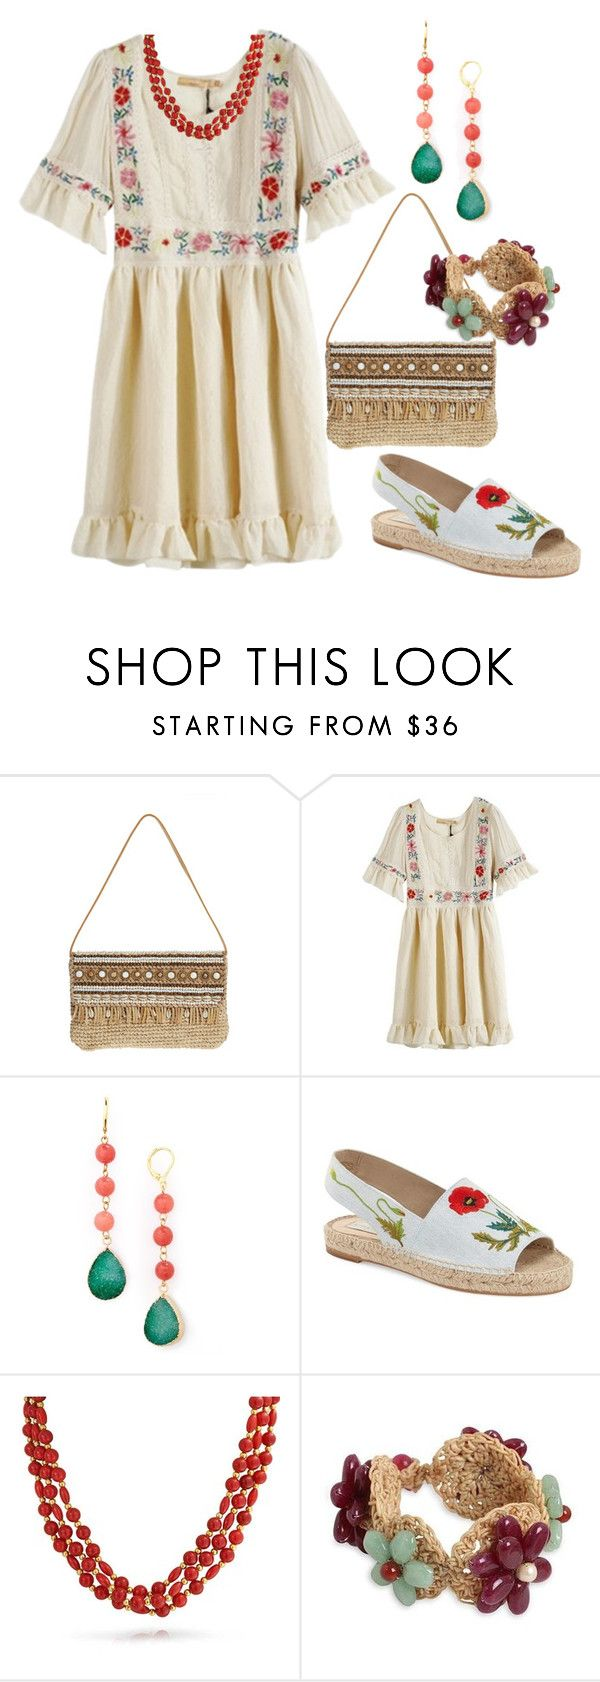 """НС - Сельский стиль 2"" by look-comskaya ❤ liked on Polyvore featuring Skemo, Panacea, STELLA McCARTNEY, Bling Jewelry, NOVICA, women's clothing, women, female, woman and misses"